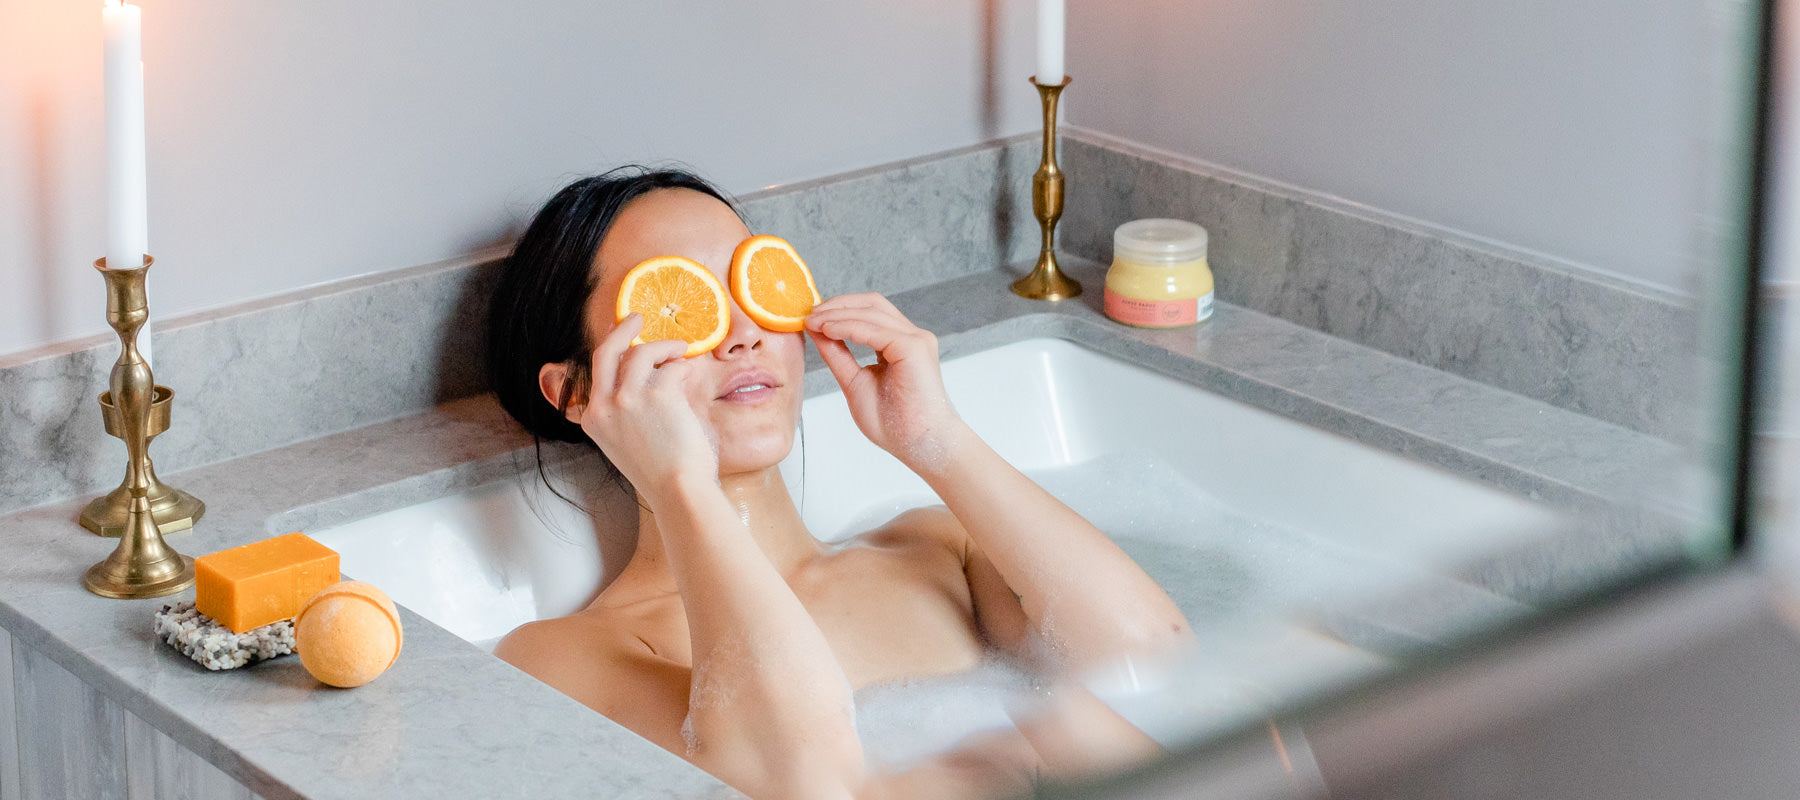 Woman in bath with orange slices on her eyes. On the side of the tub are Canadian local Rocky Mountain Soap Company natural bar soap, bath bomb and body scrub.